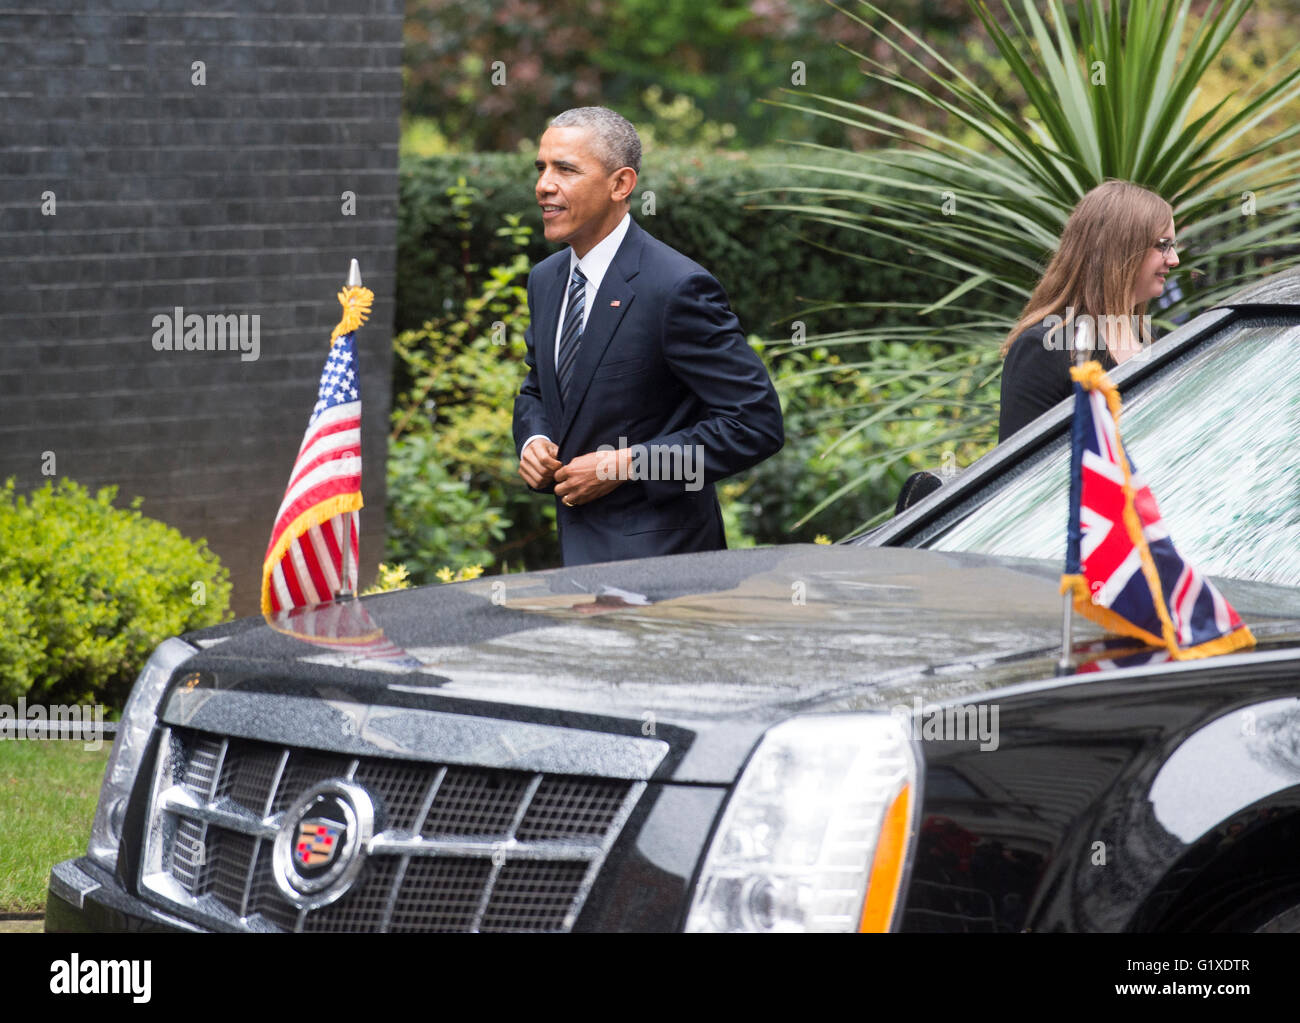 hight resolution of president barack obama meeting prime minister david cameron in downing street london stock image